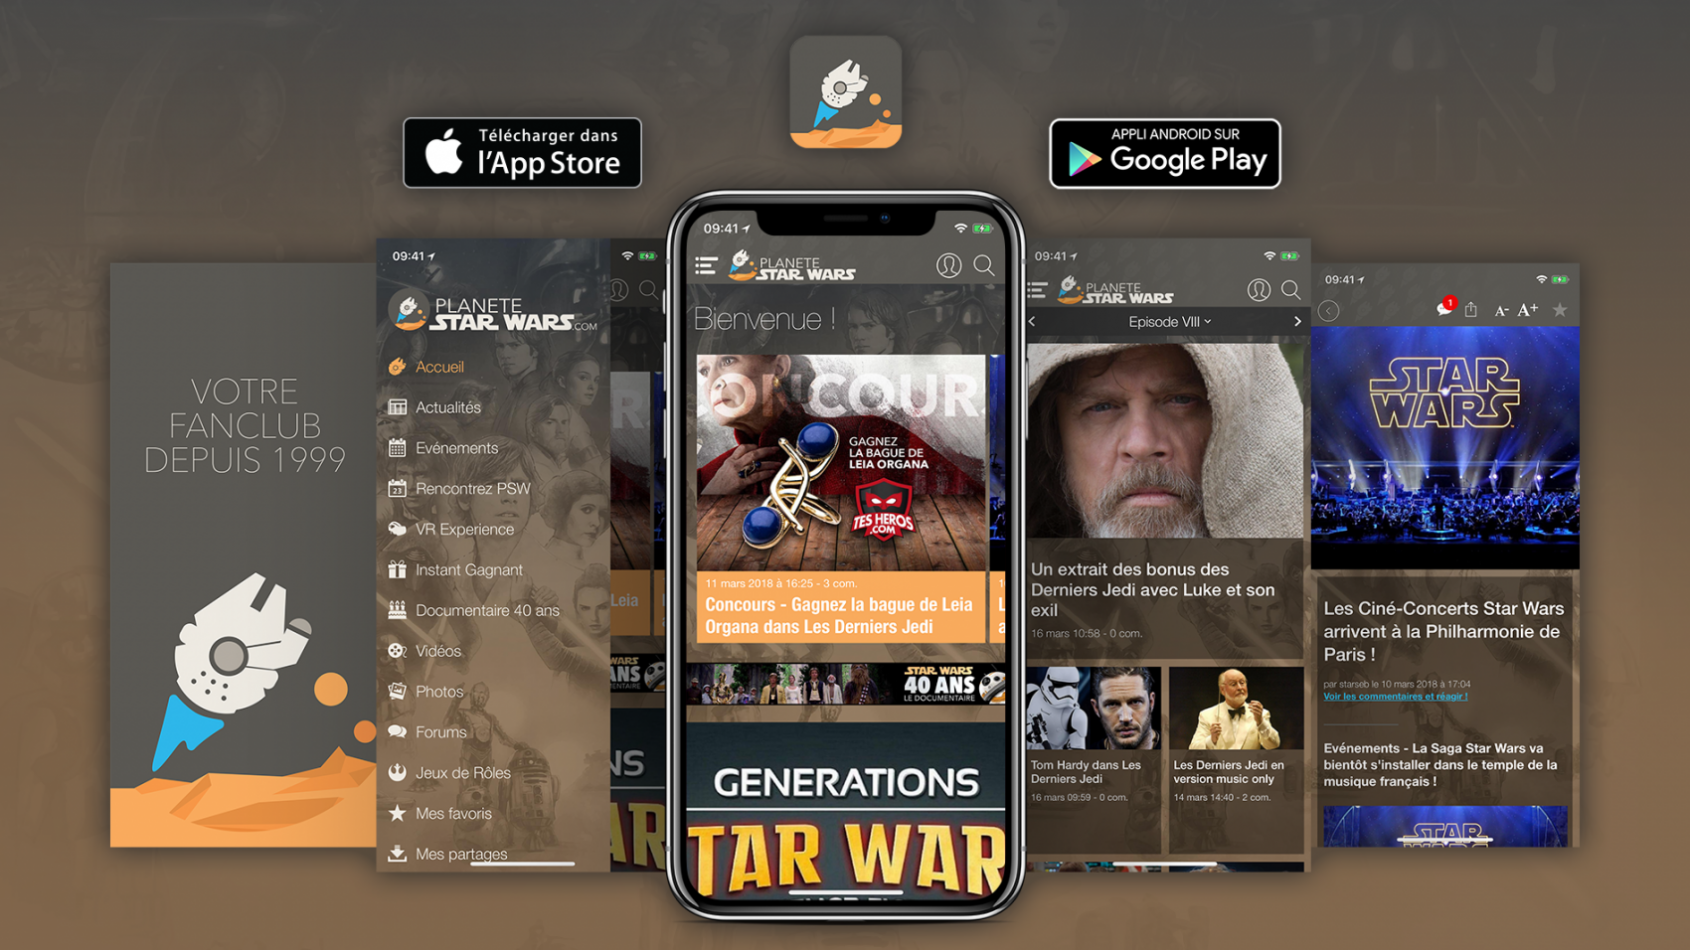 Avez-vous l'application mobile du fan club Star Wars ?